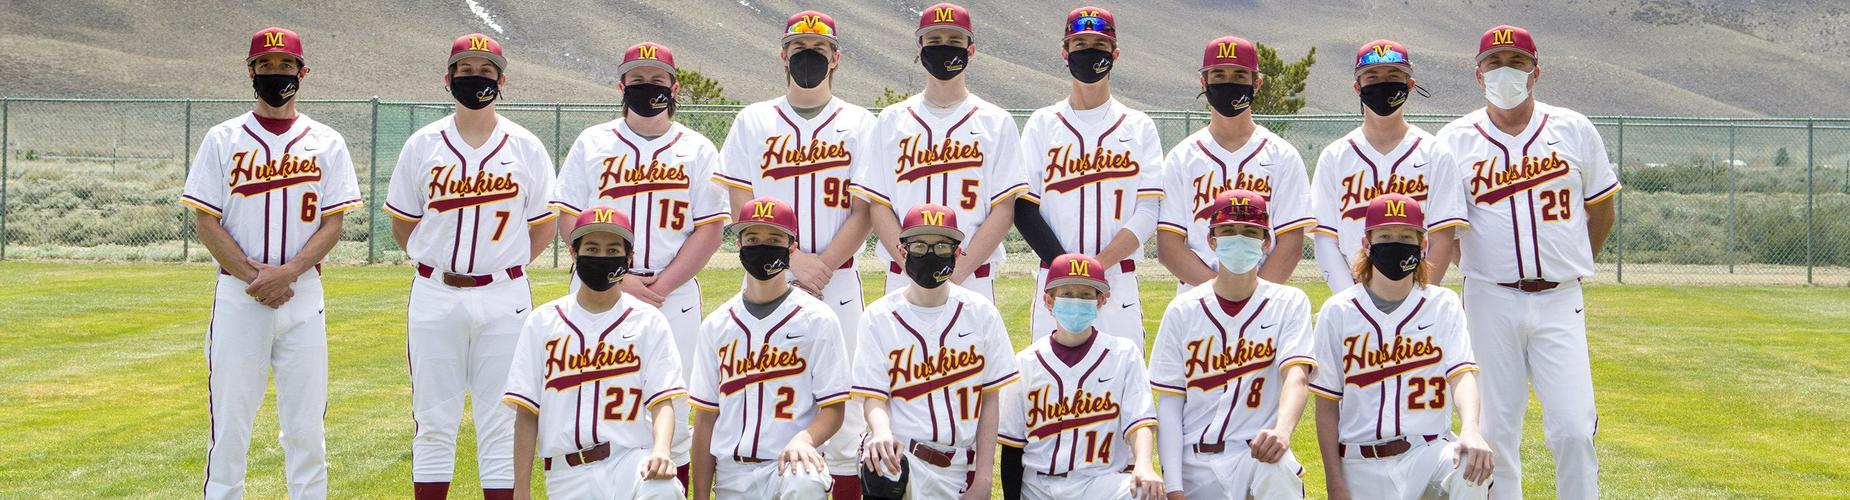 Mammoth High School 2021 baseball team picture. Back row standing front row kneeling, all wearing masks